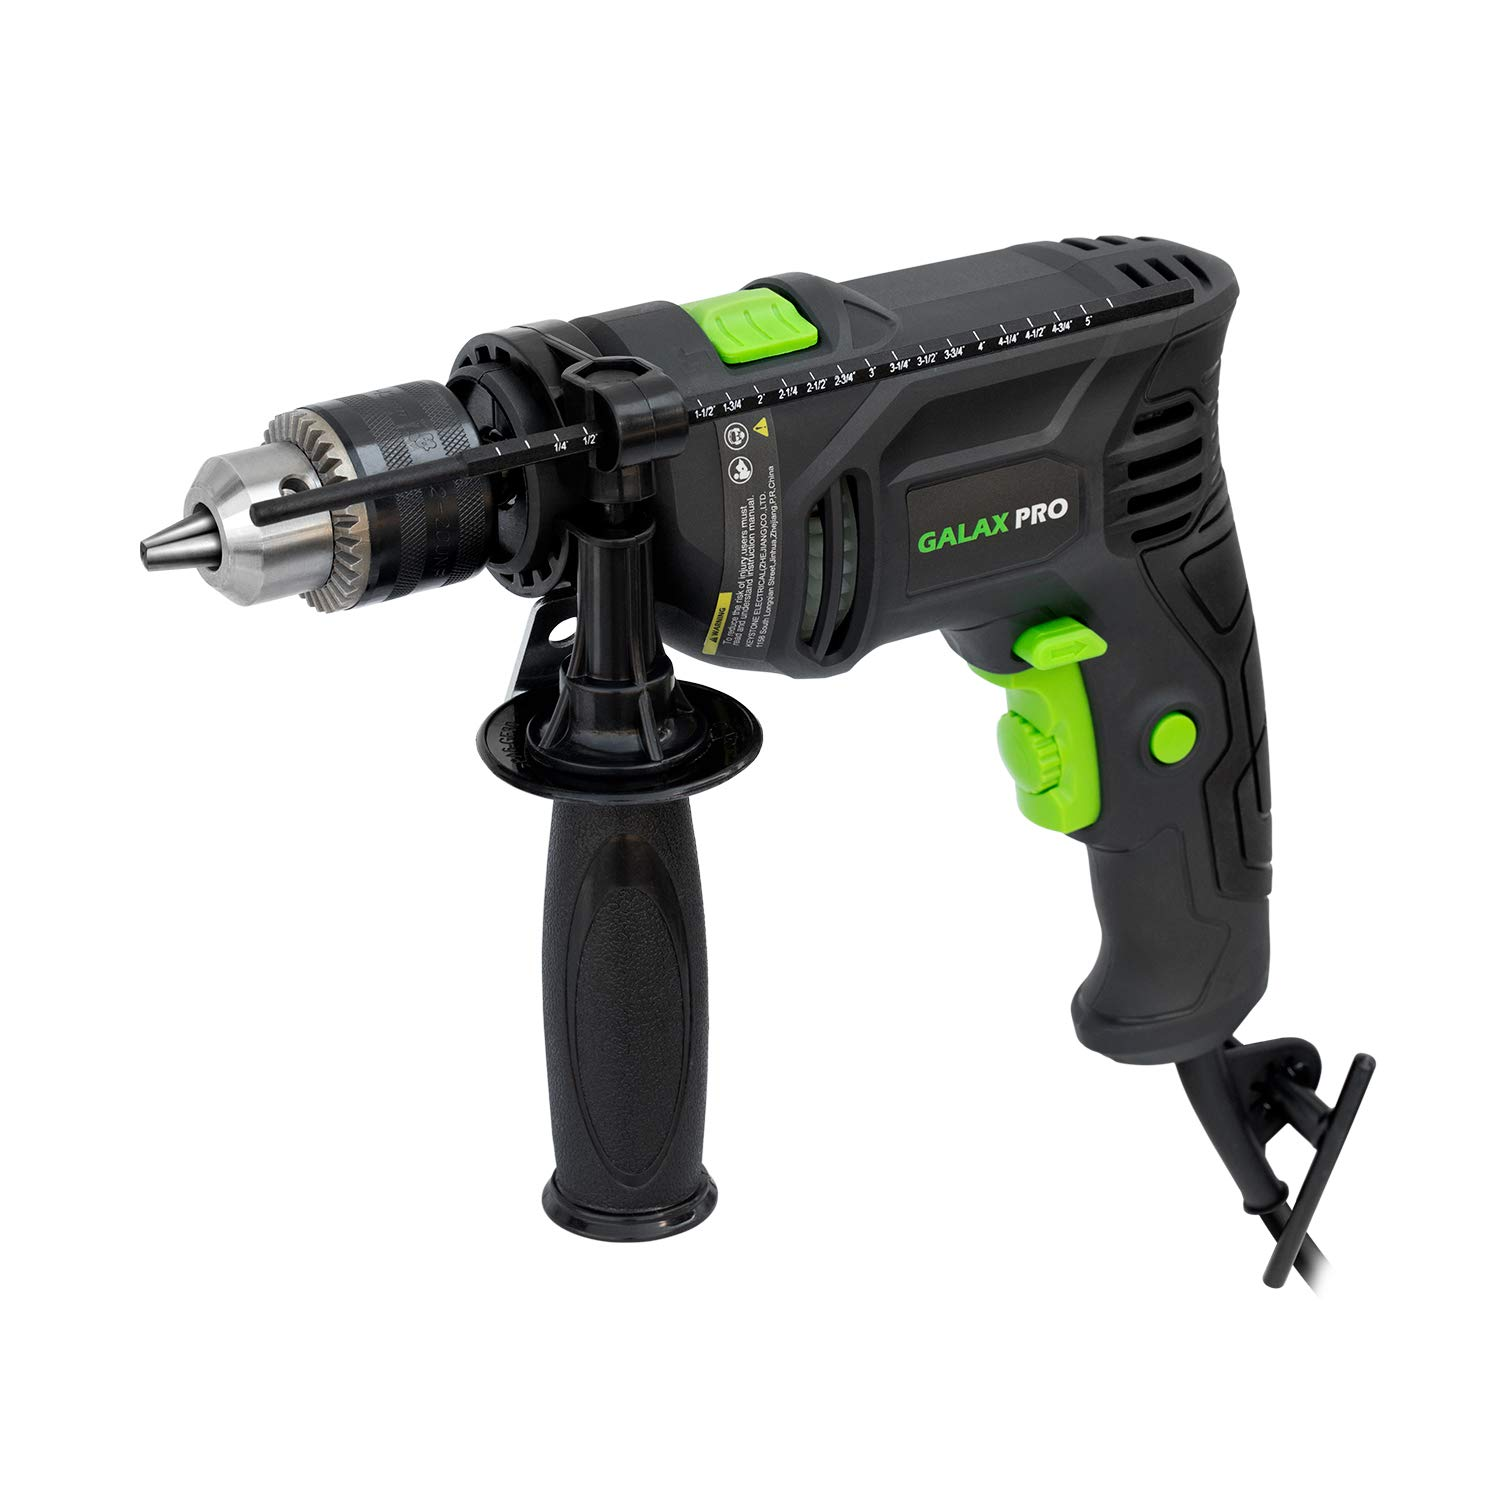 Hammer Drill, GALAX PRO 5Amp Electic Corded Drill, 1/2'' metal chuck, 0-3000RPM, Powerful Variable speed Drill for drilling in steel, concrete, and steel_GP57322